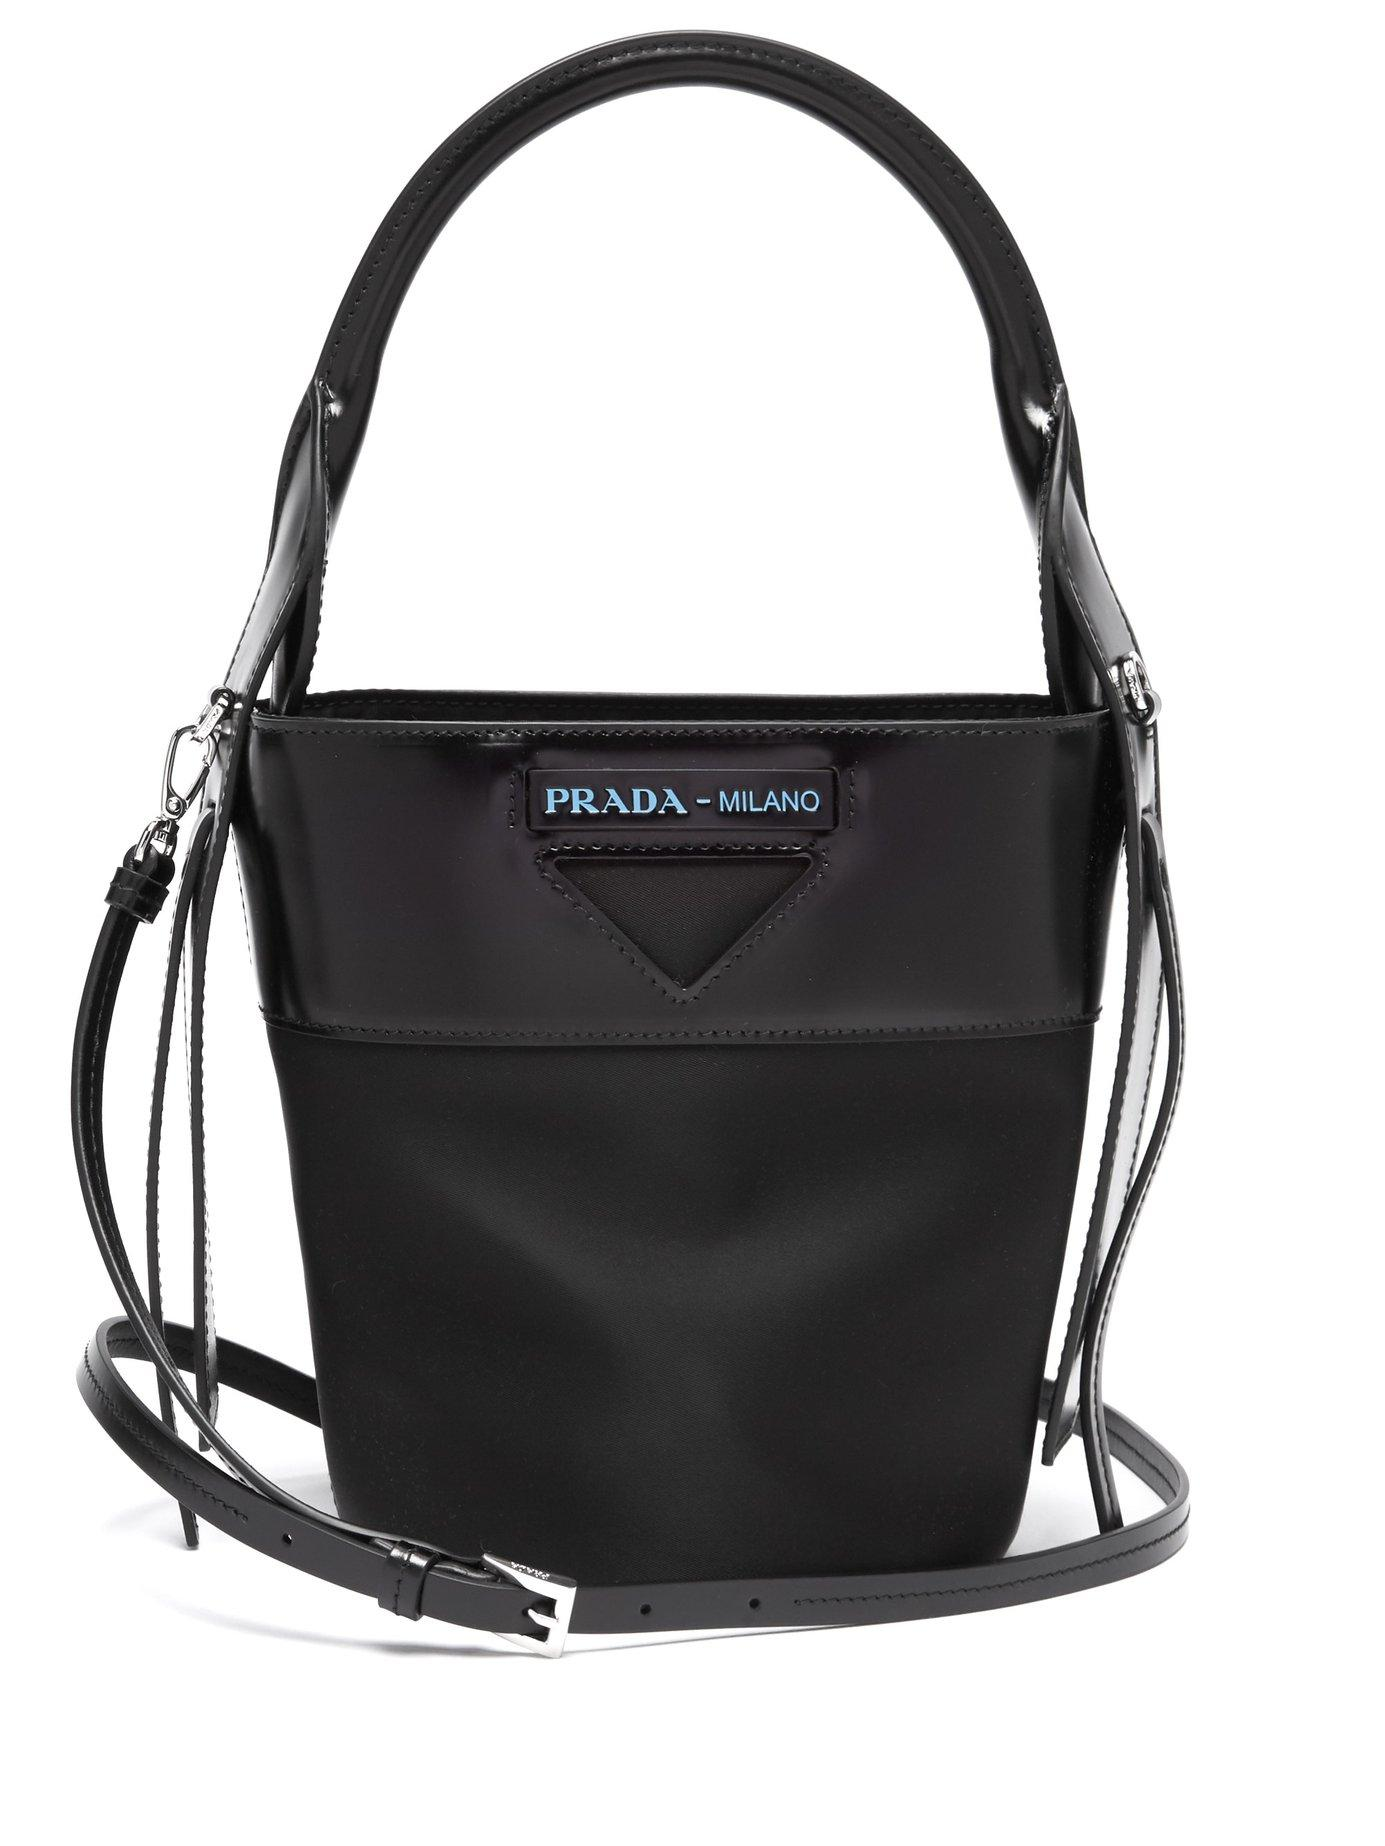 0280c43b4712 Lyst - Prada Nylon And Leather Bucket Bag in Black - Save 24%